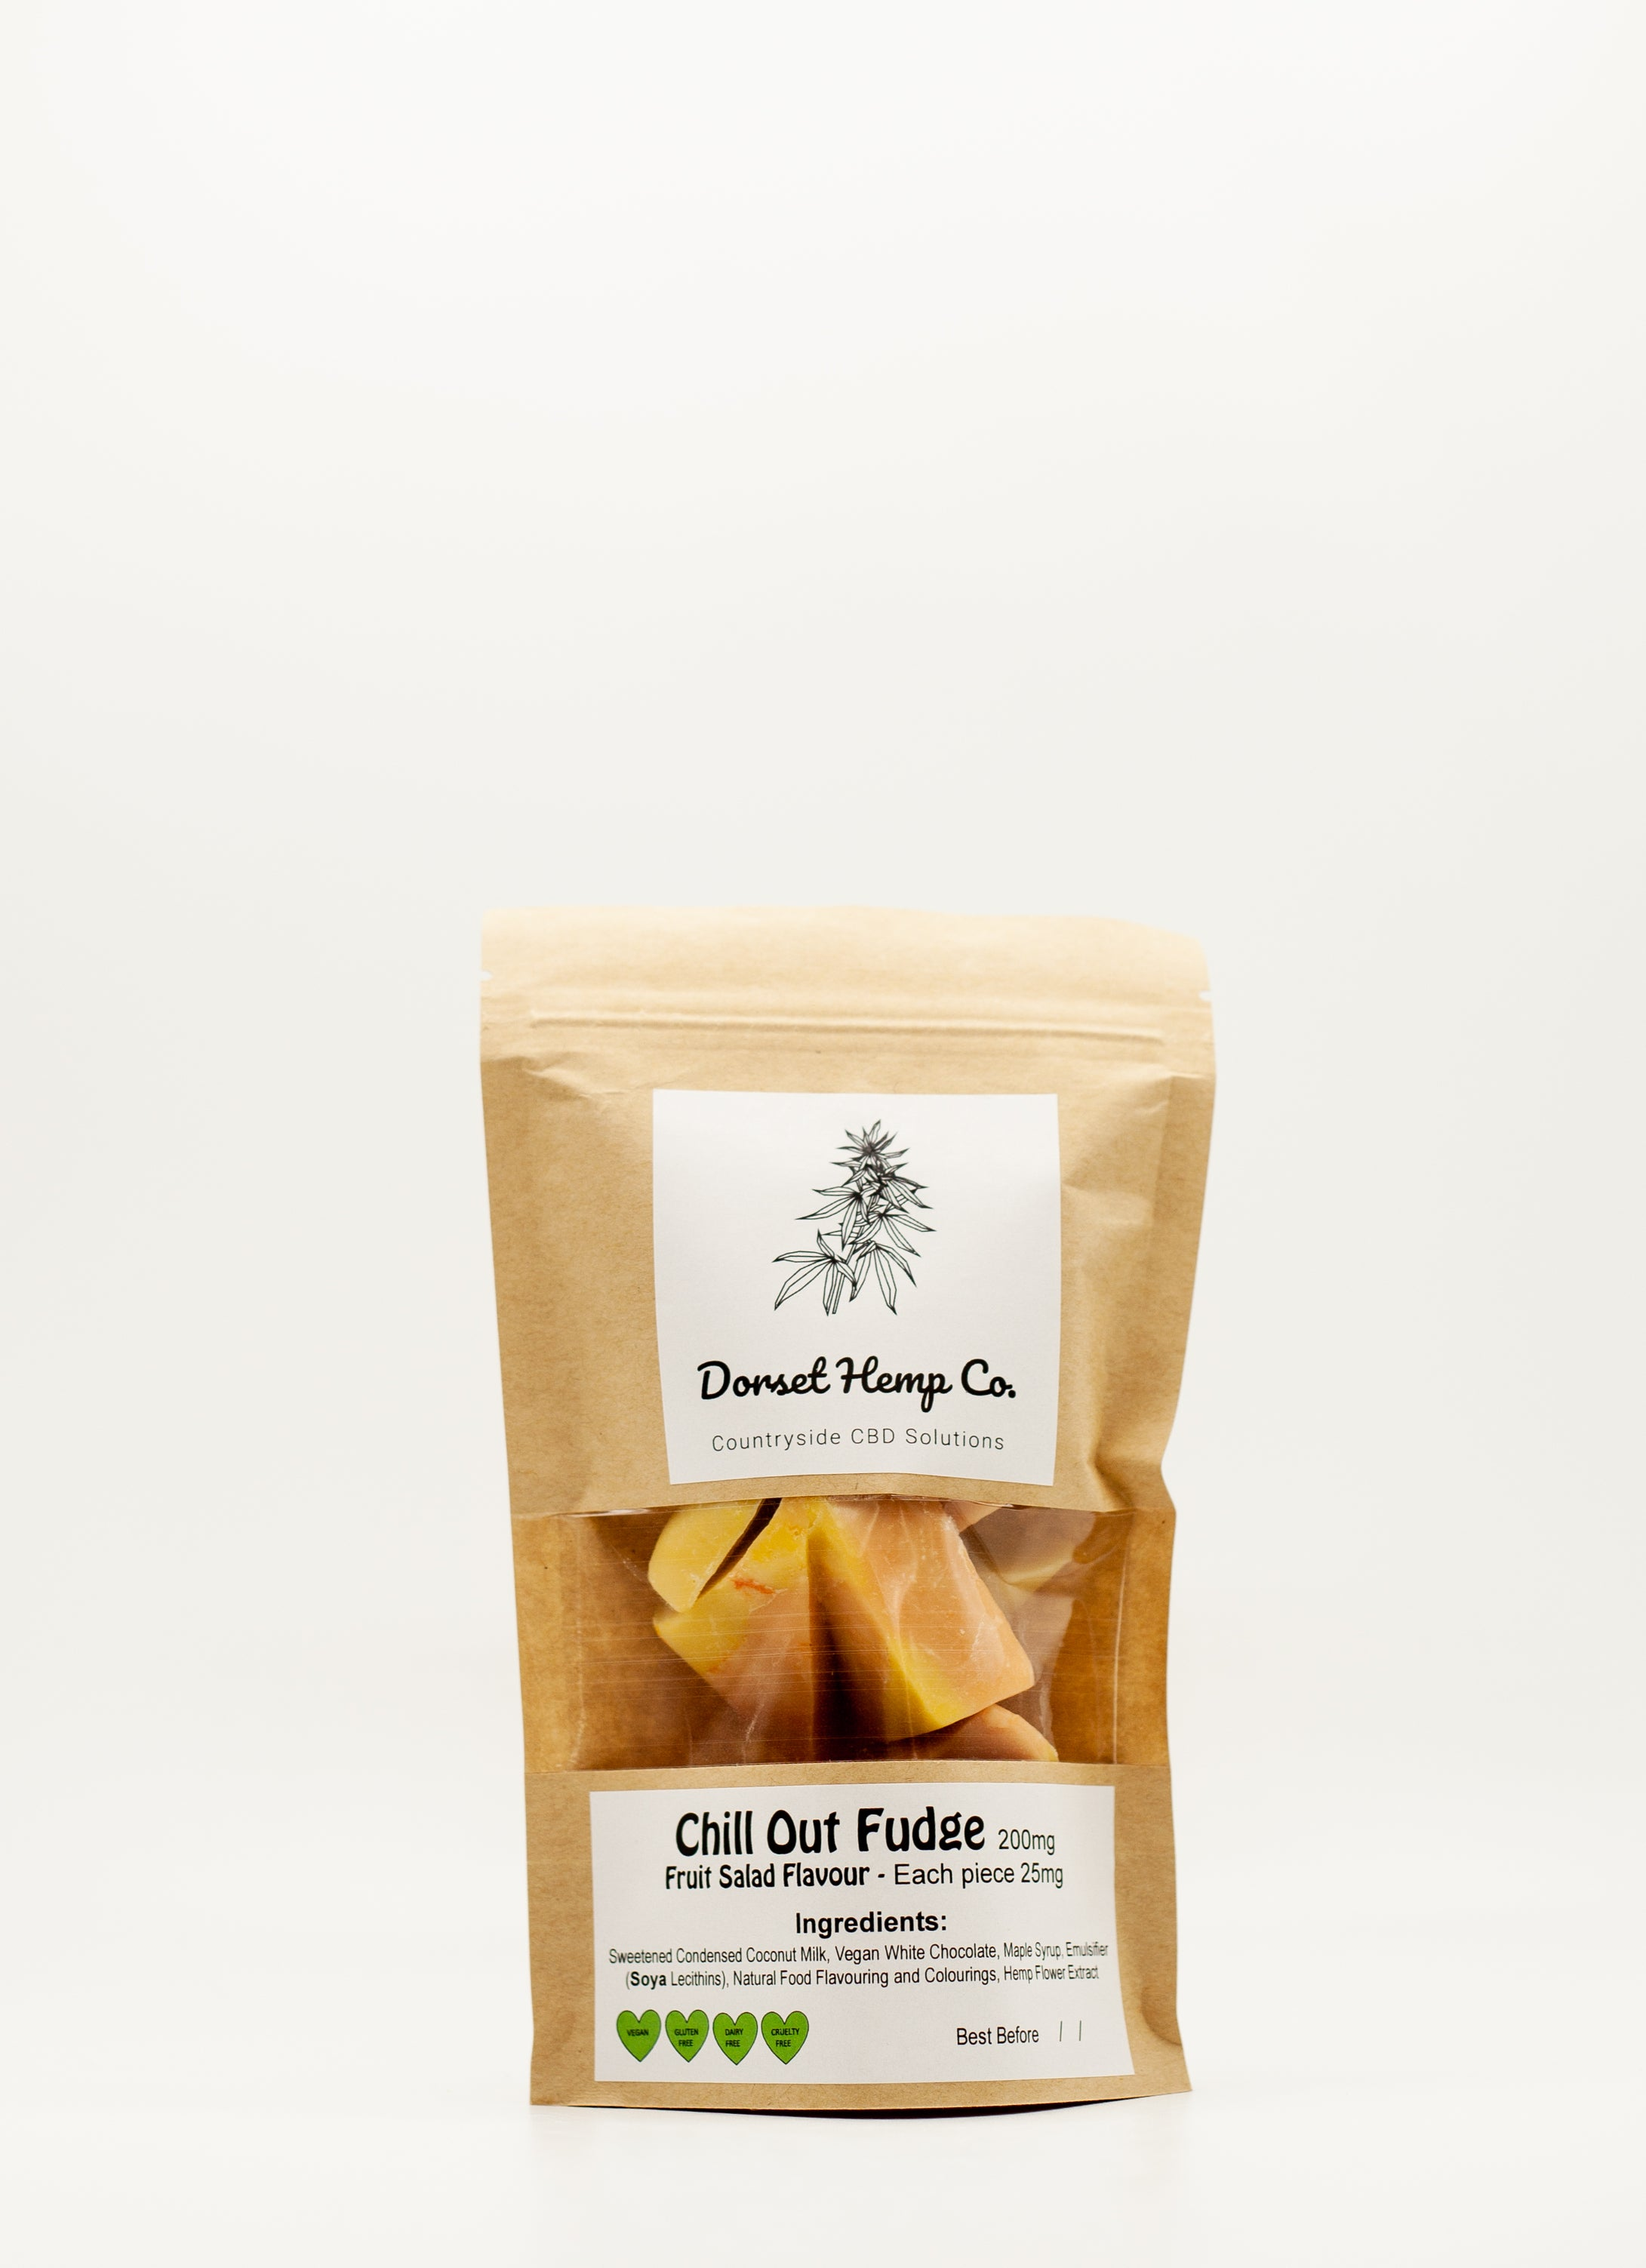 Chill Out Fudge - Fruit Salad Flavour - 200mg